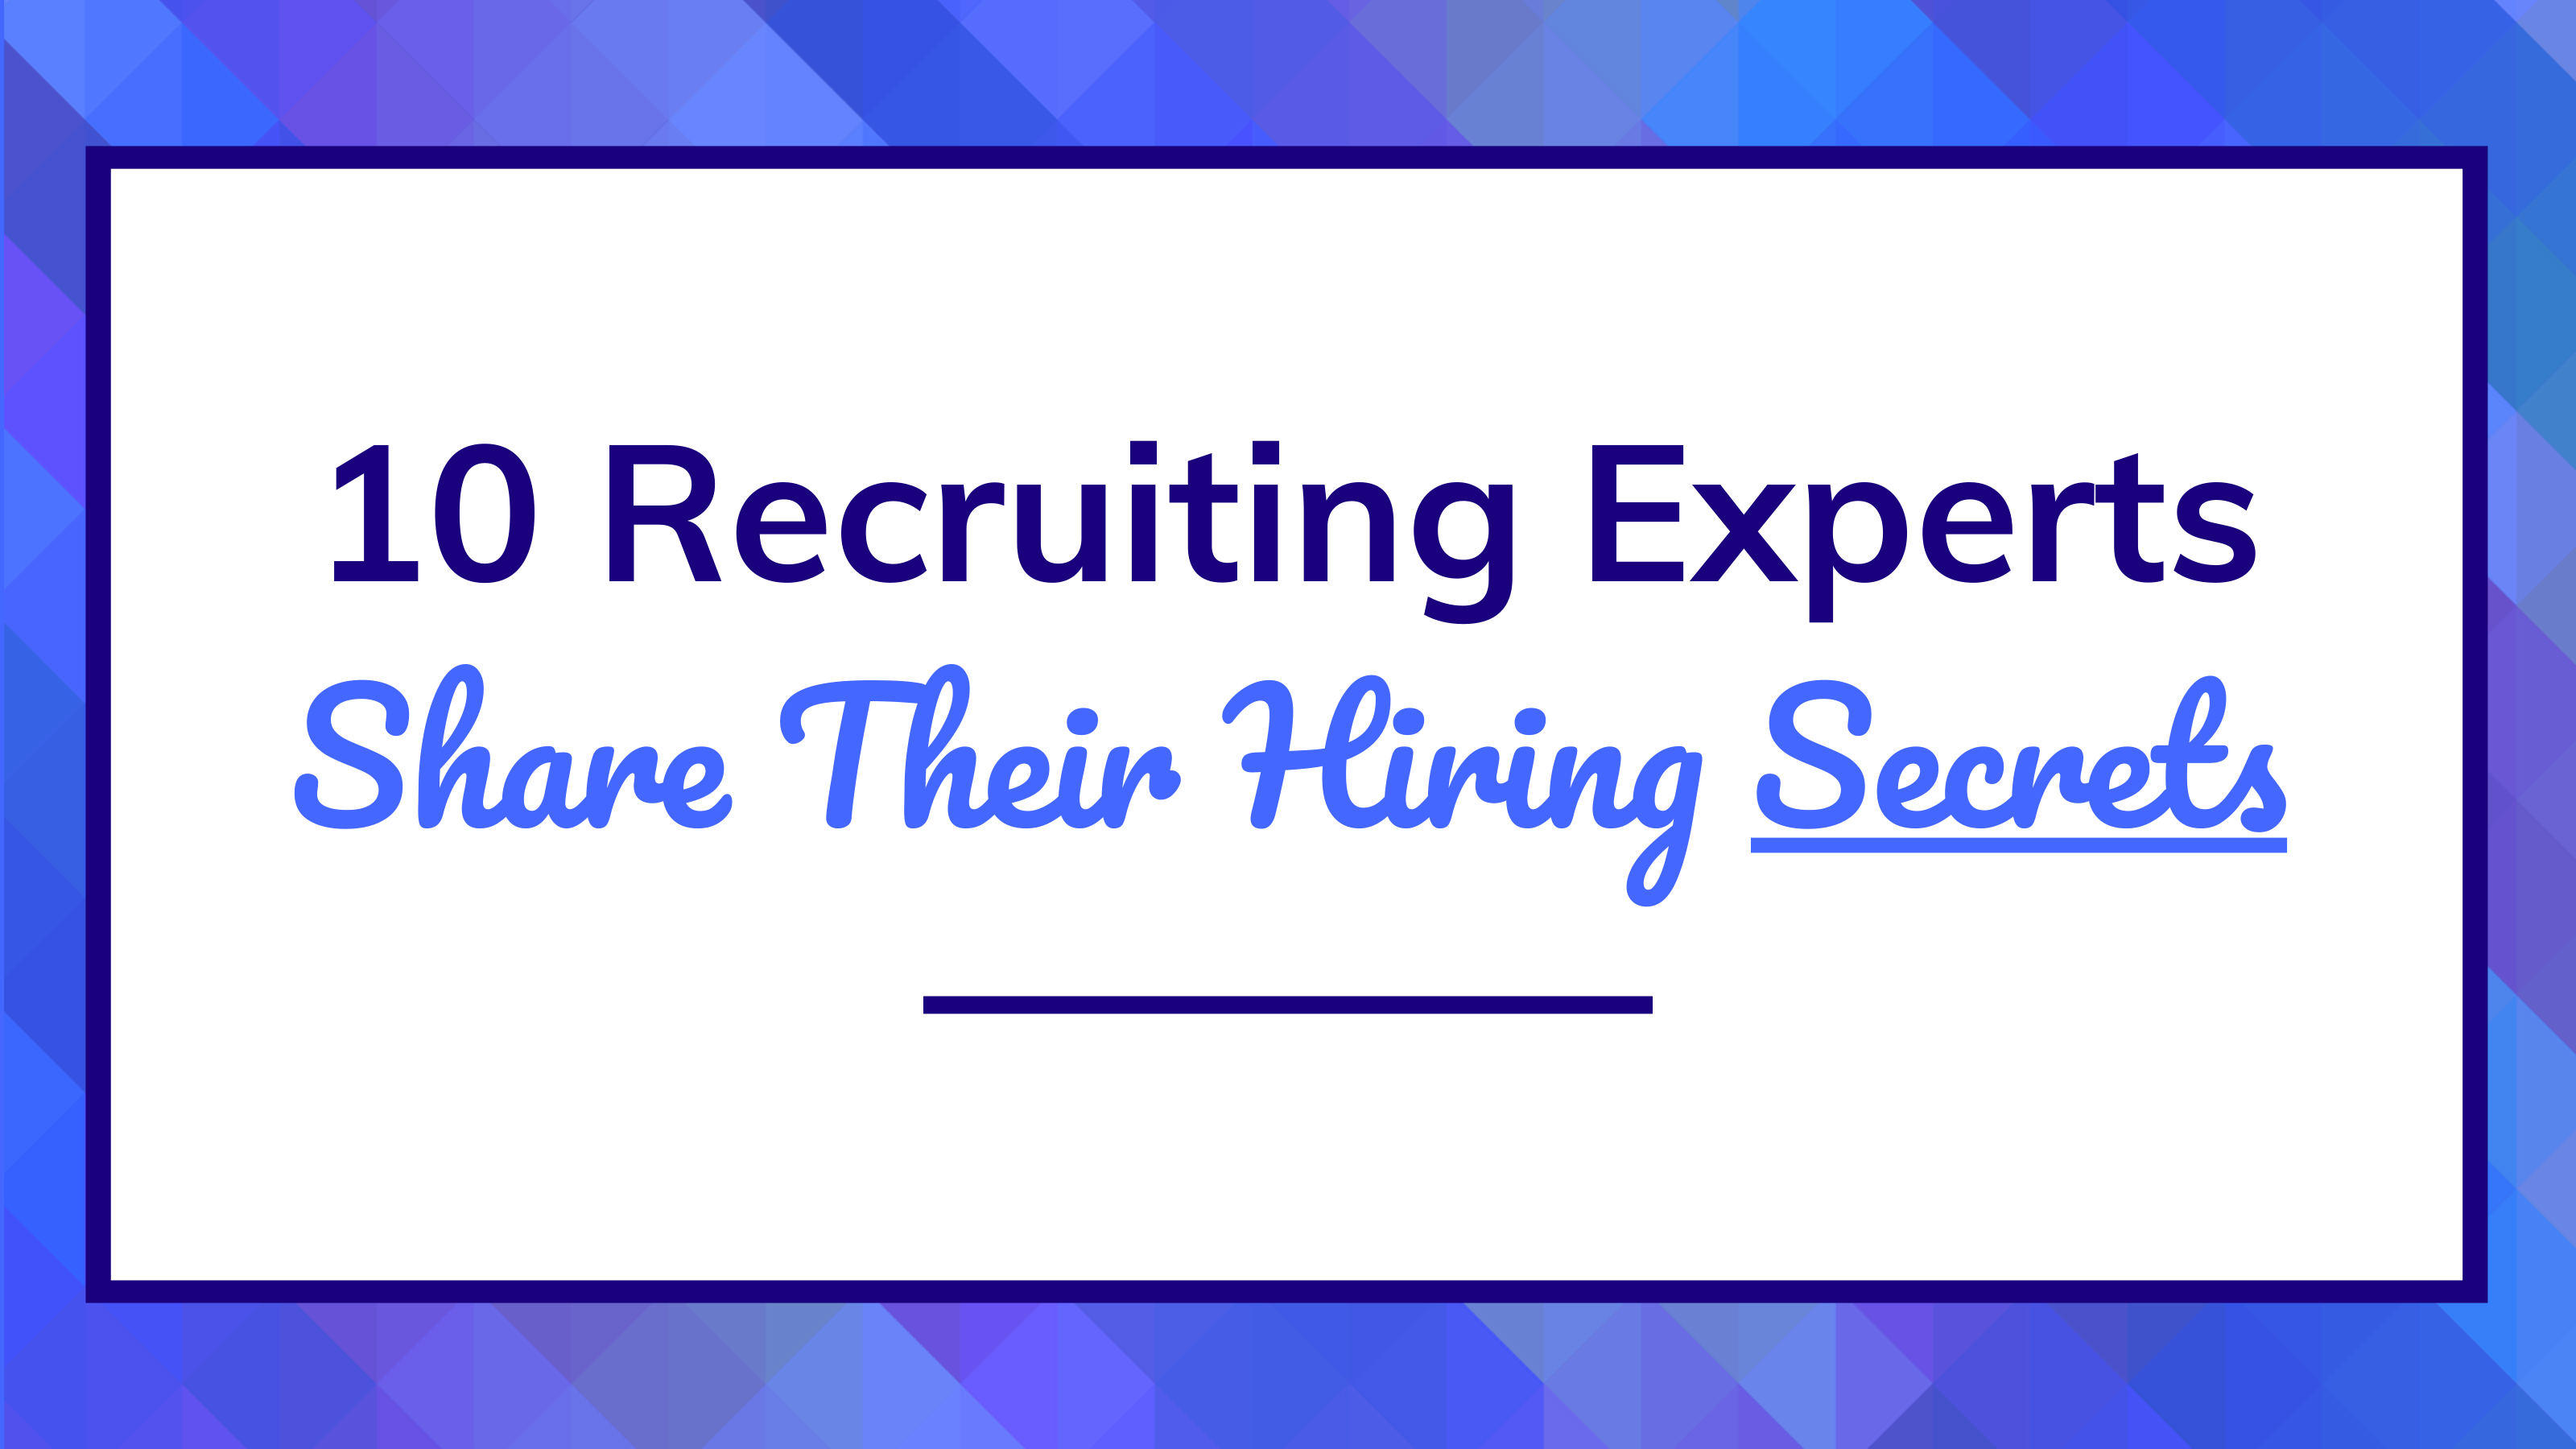 10 Hiring Experts Share Their Recruiting Tips